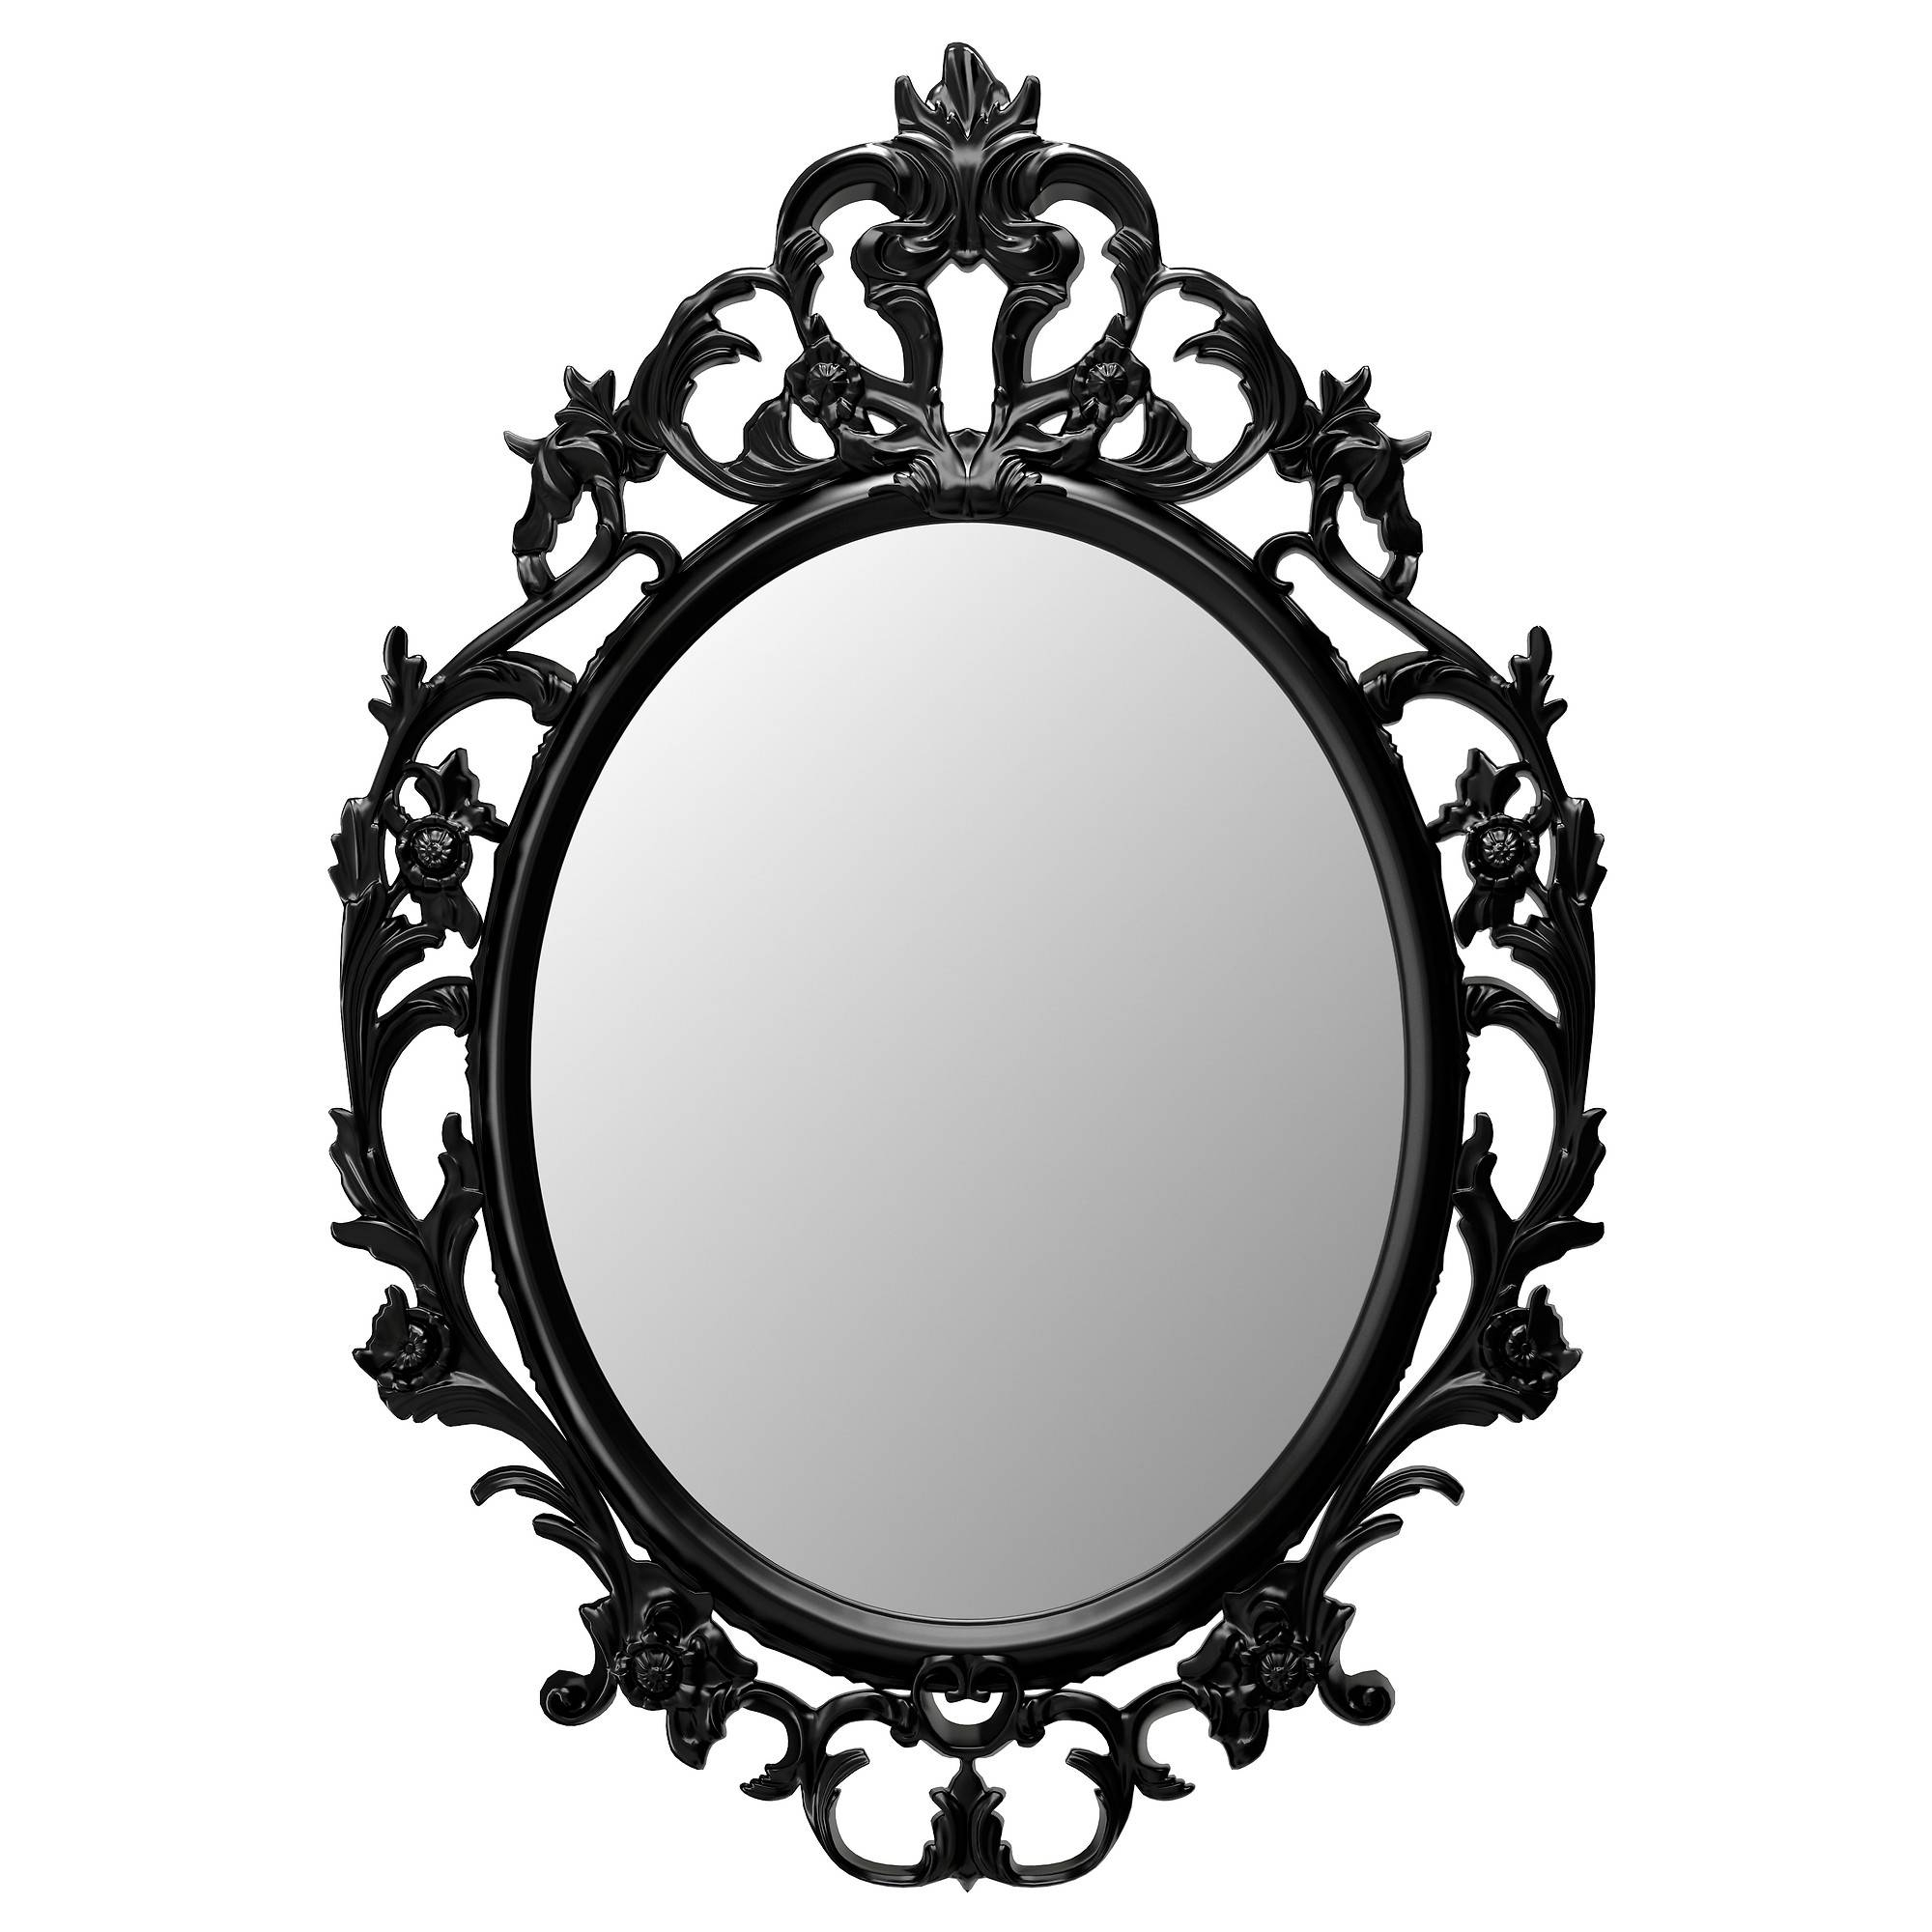 Ung Drill Mirror Oval/black 59X85 Cm - Ikea with Baroque White Mirrors (Image 22 of 25)